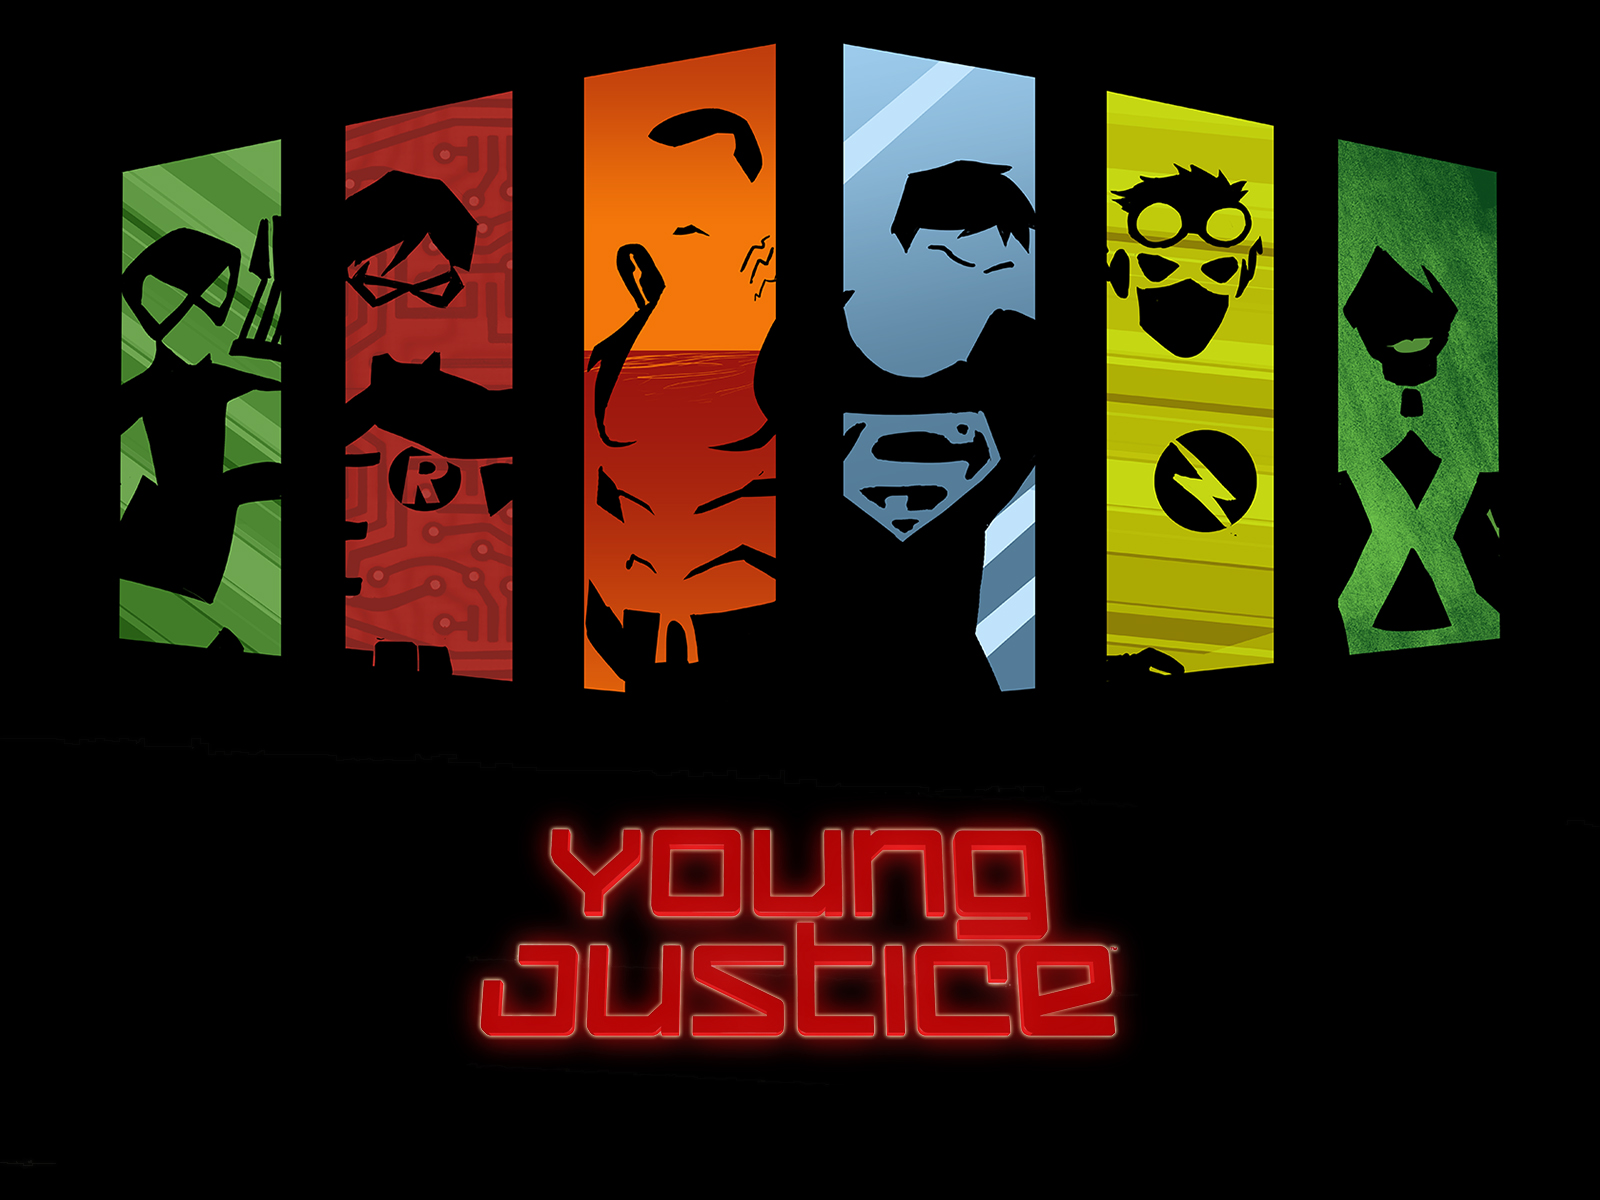 young justice wallpaperjpg 1600x1200